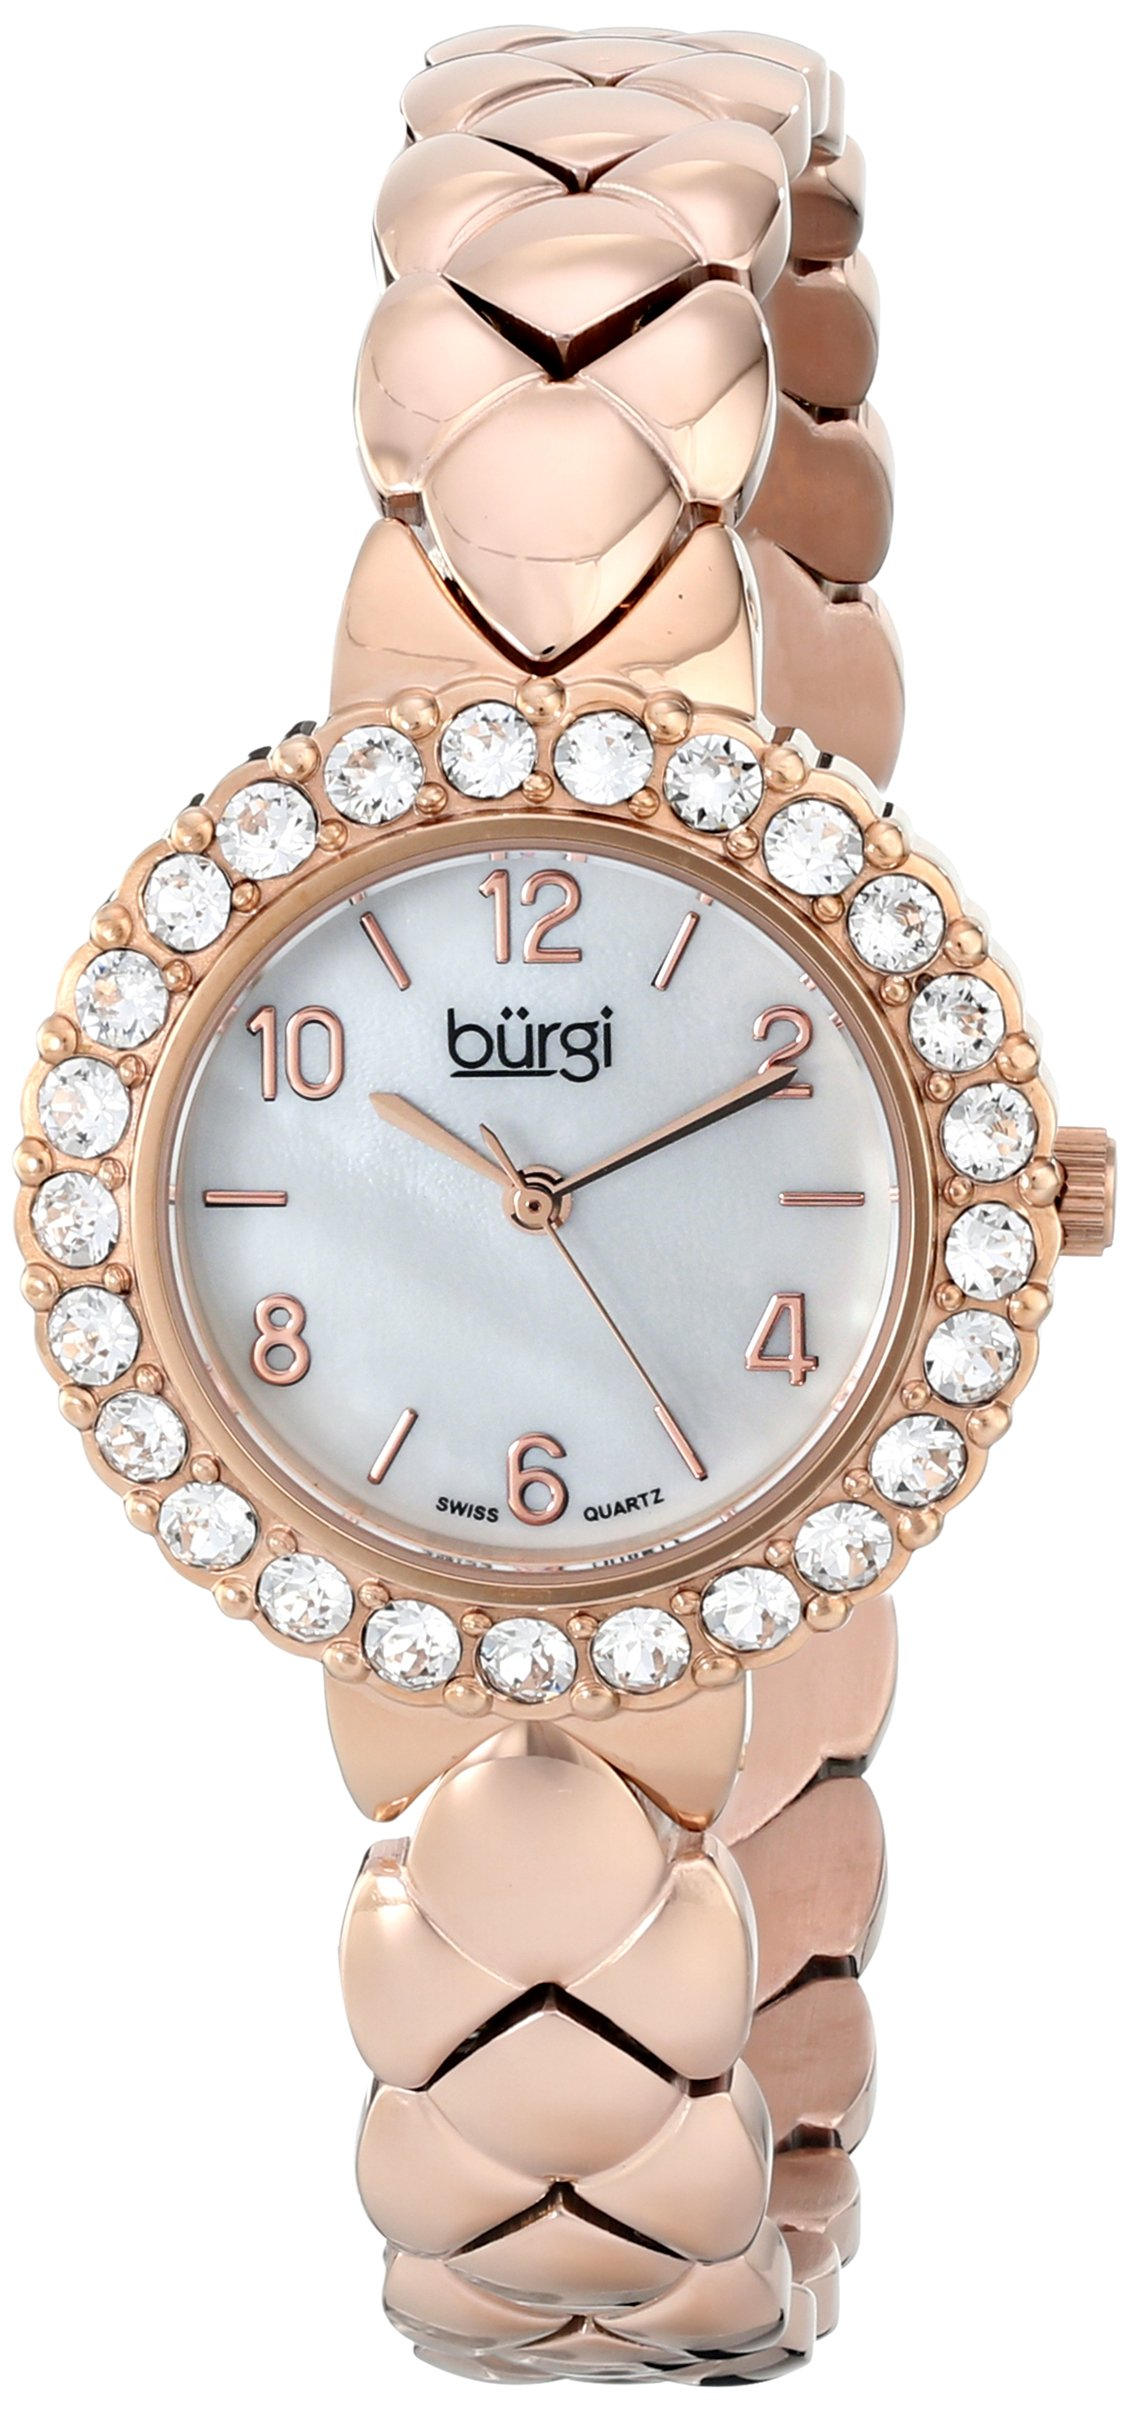 Burgi Women's BUR113RG Crystal Accented Rose Gold Swiss Quartz Watch with White Mother of Pearl Dial and Rose Gold Bracelet